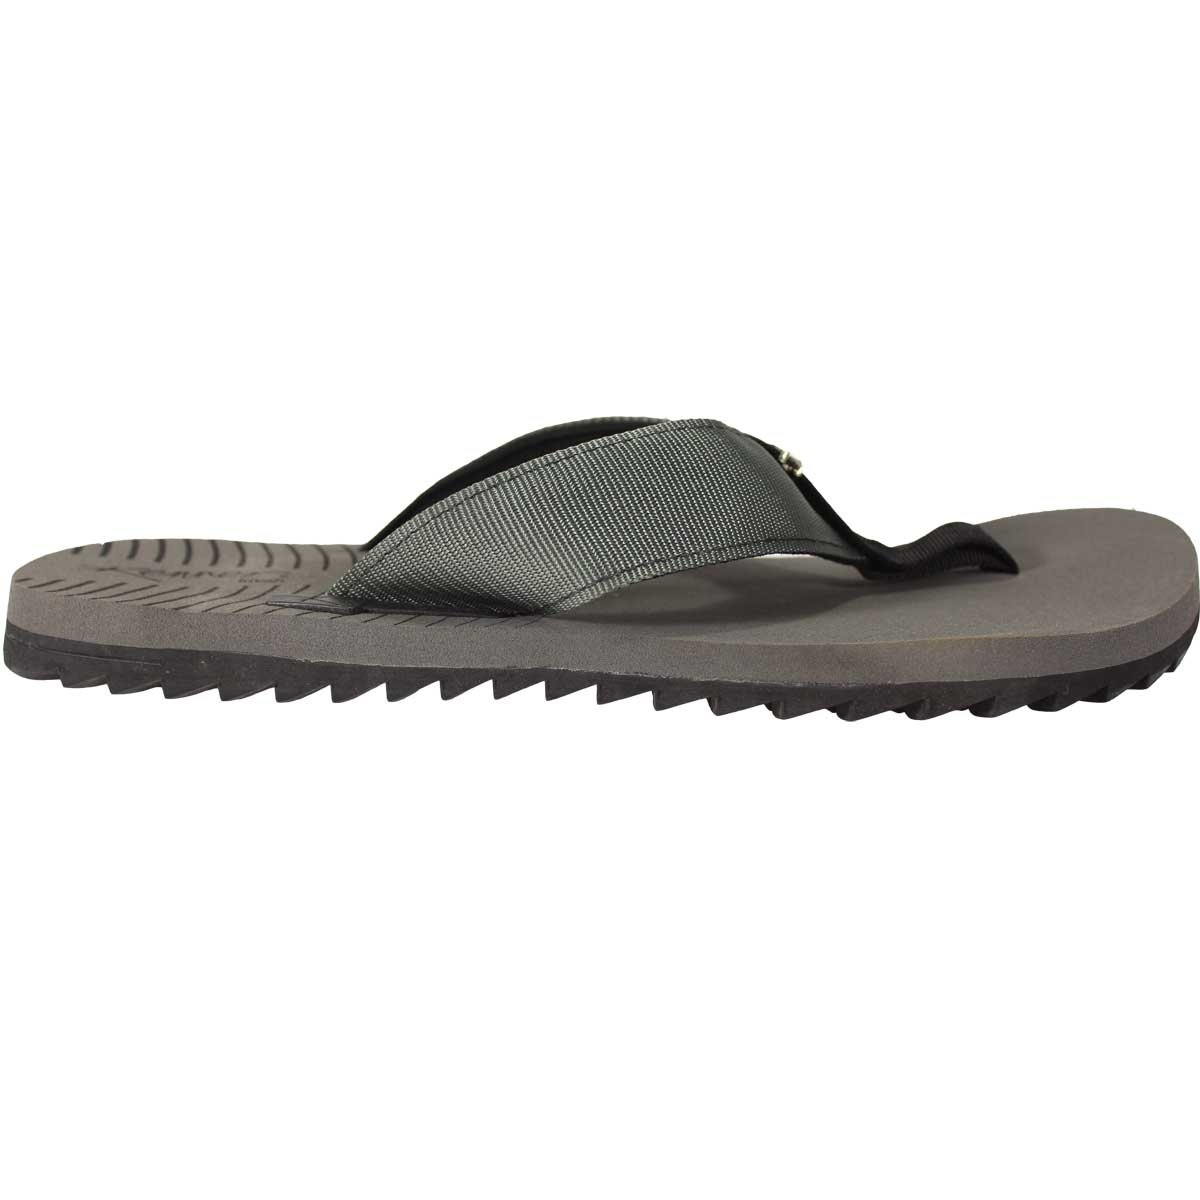 Silver Chinelo Kenner Chrome Kenner Neo Chinelo Kivah Cinza Kivah Silver Chrome Neo Cinza Chinelo 1PBqA